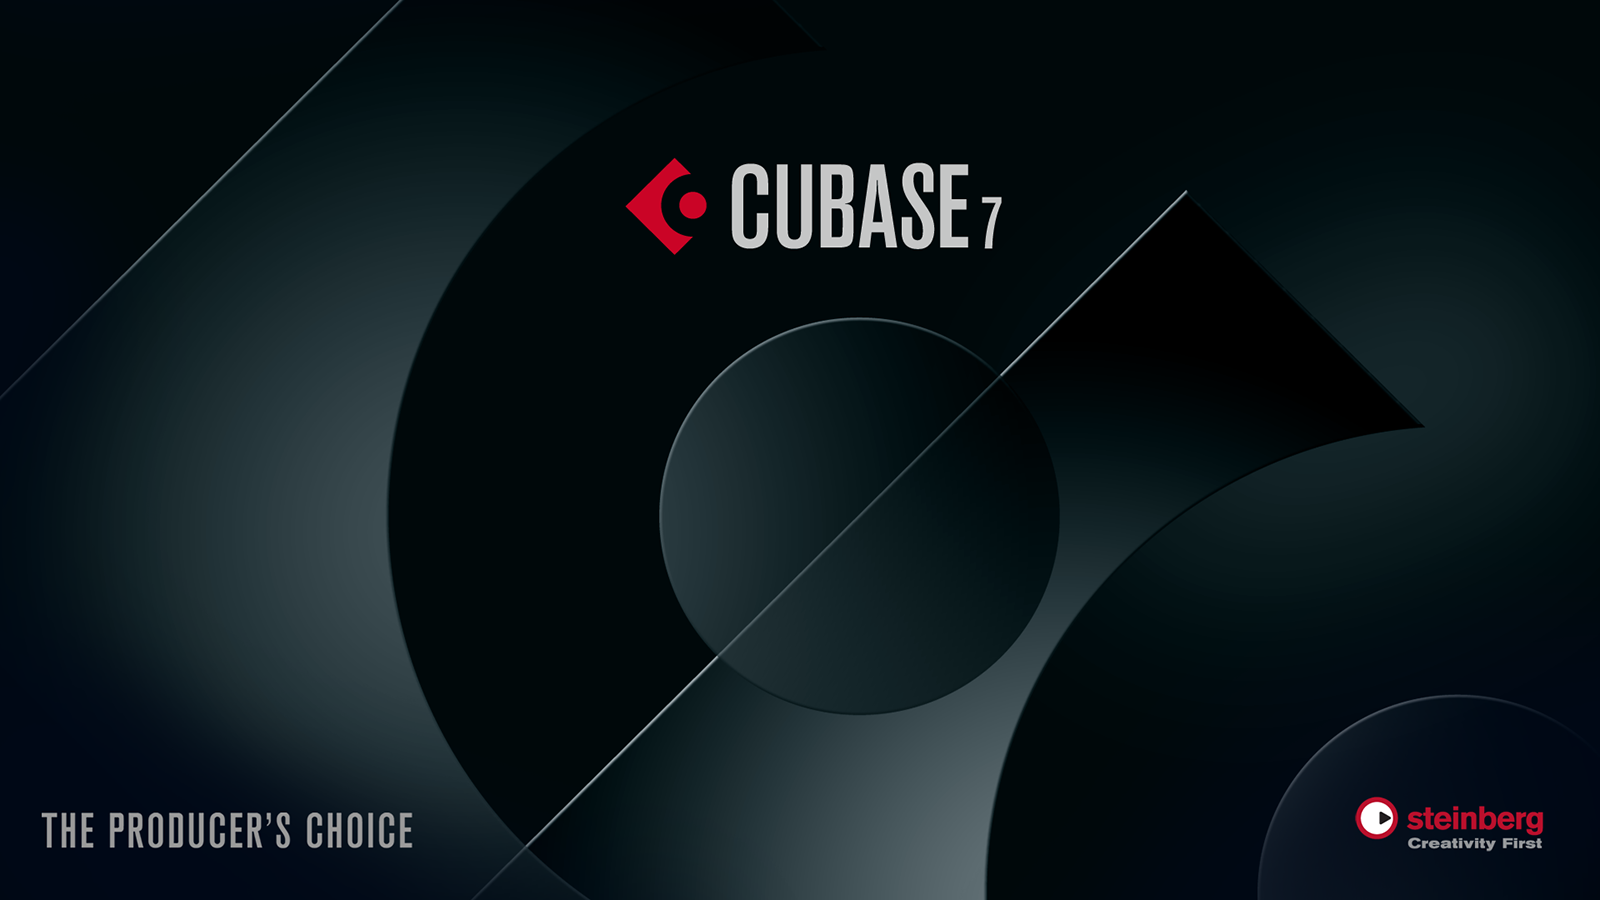 activation code cubase 7 free download